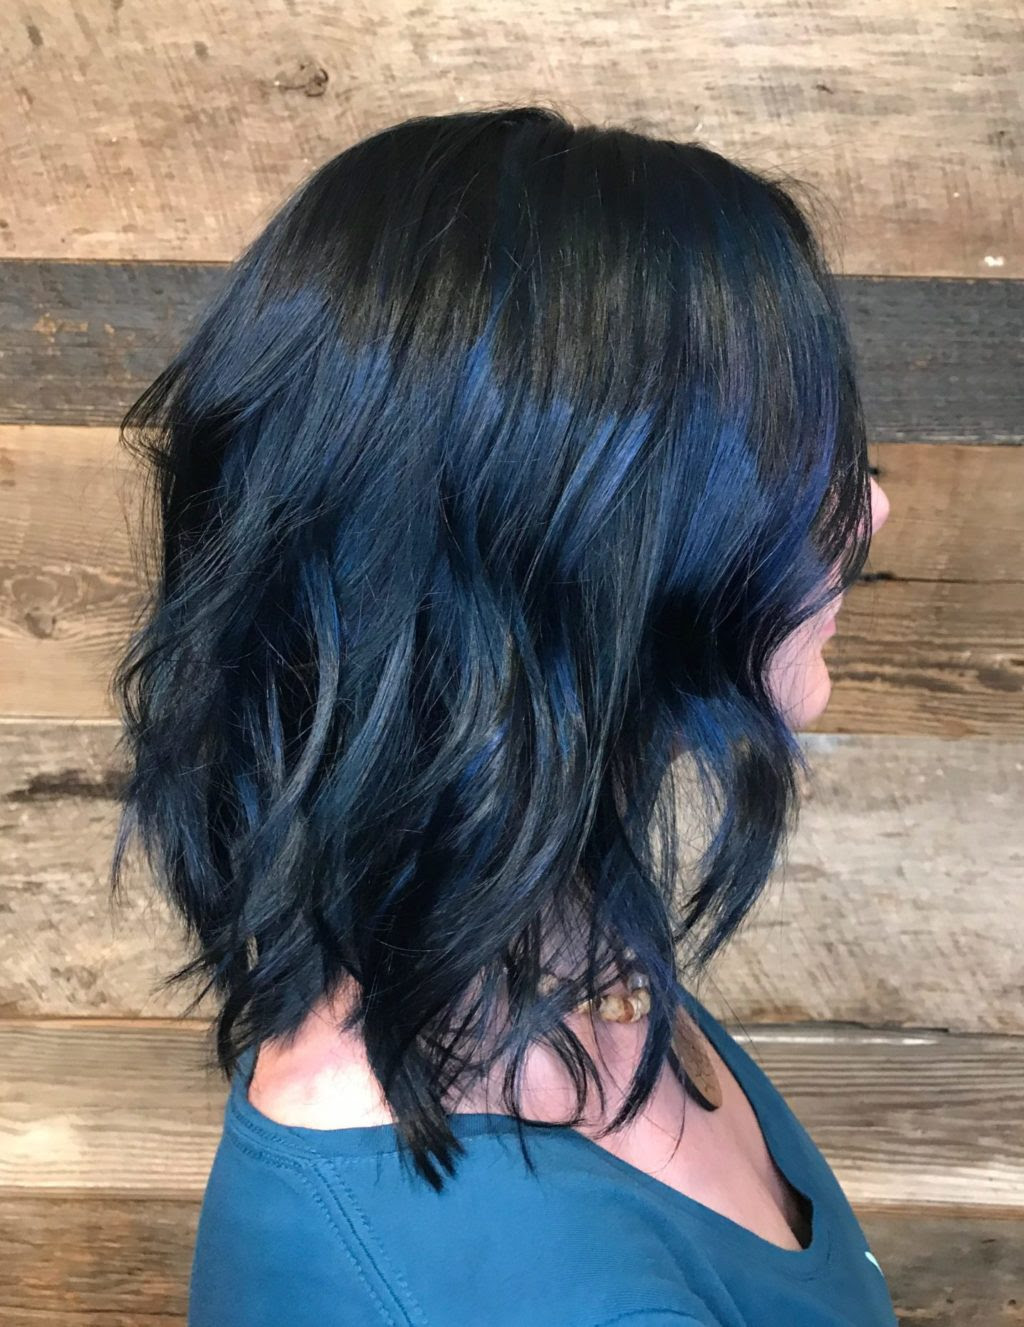 Midnight Blue Hair Color Lob Long Bob Textured Beach Waves Black